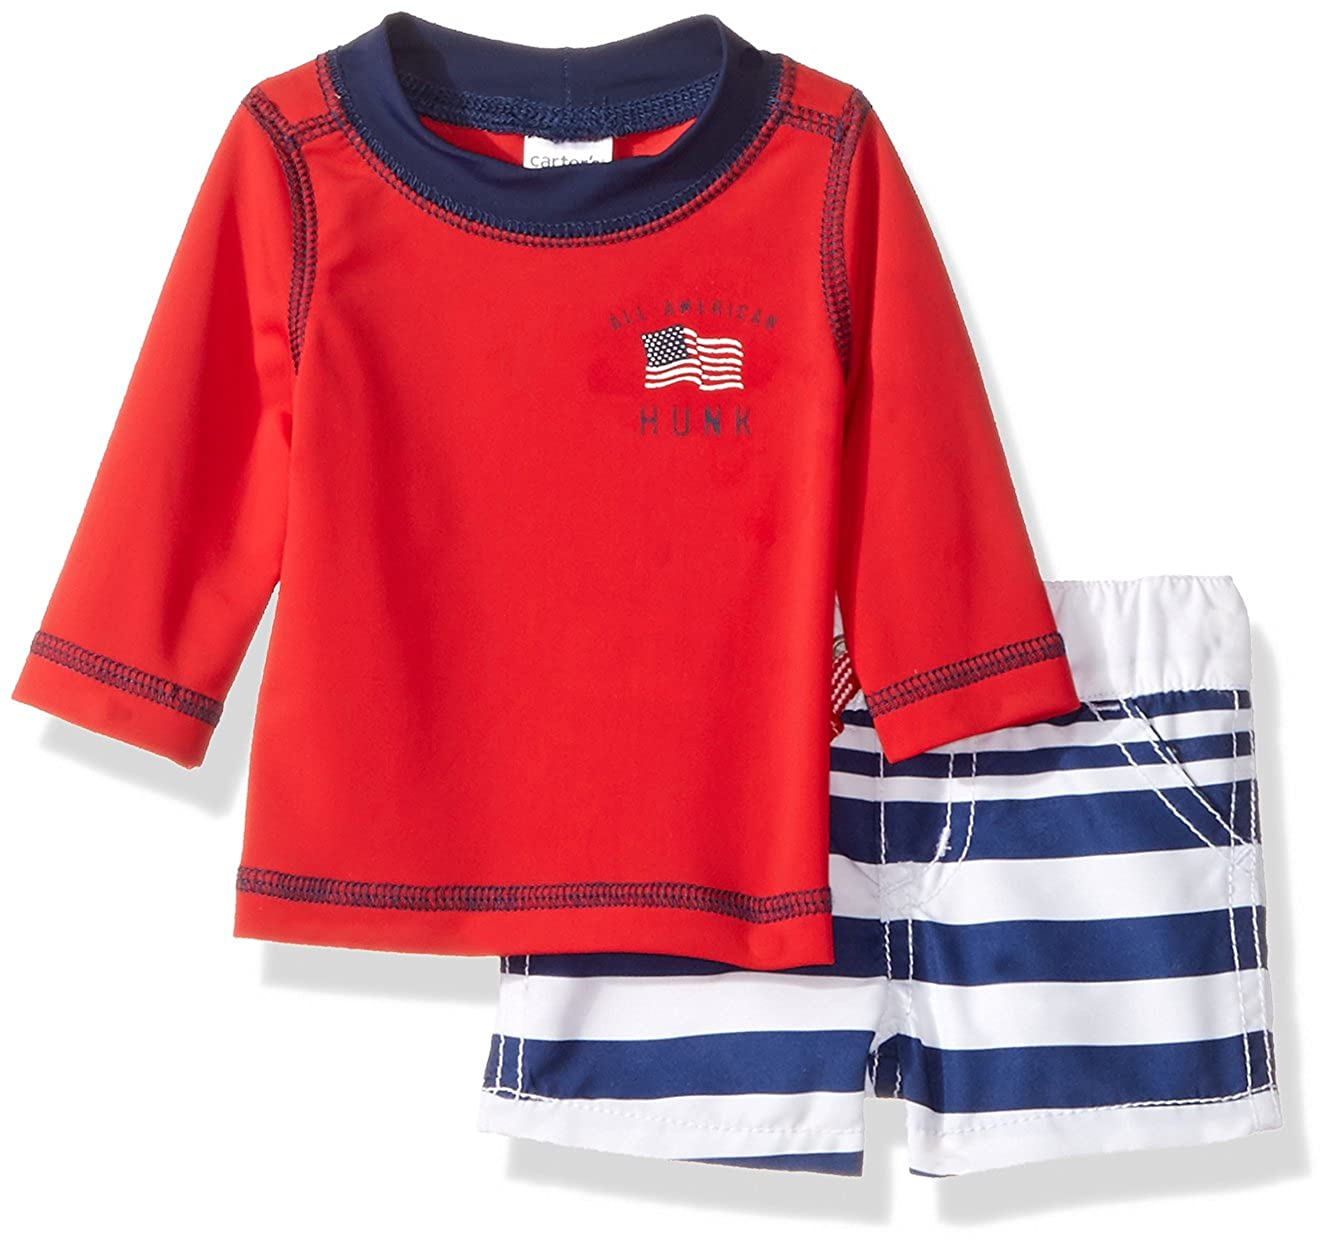 Carter's Baby Boys' Swimwear 119g070 Carters